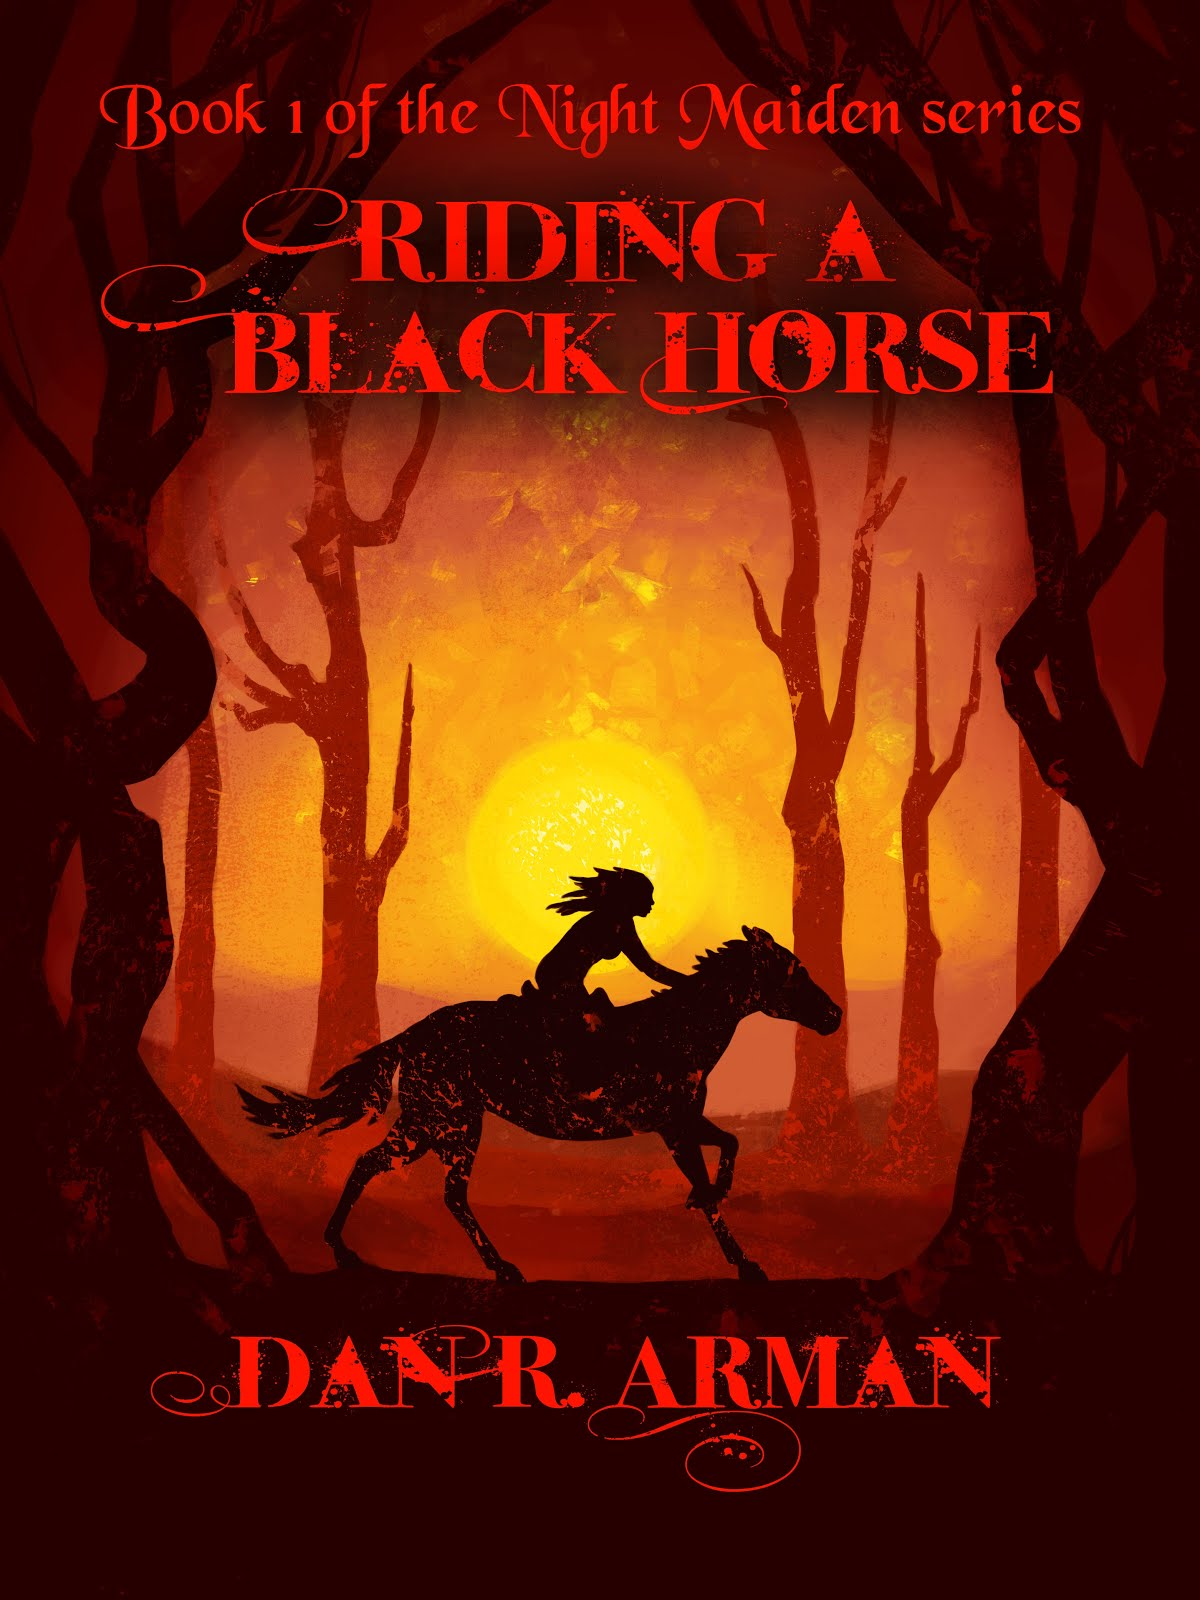 Riding a Black Horse (Book 1 of the Night Maiden series)